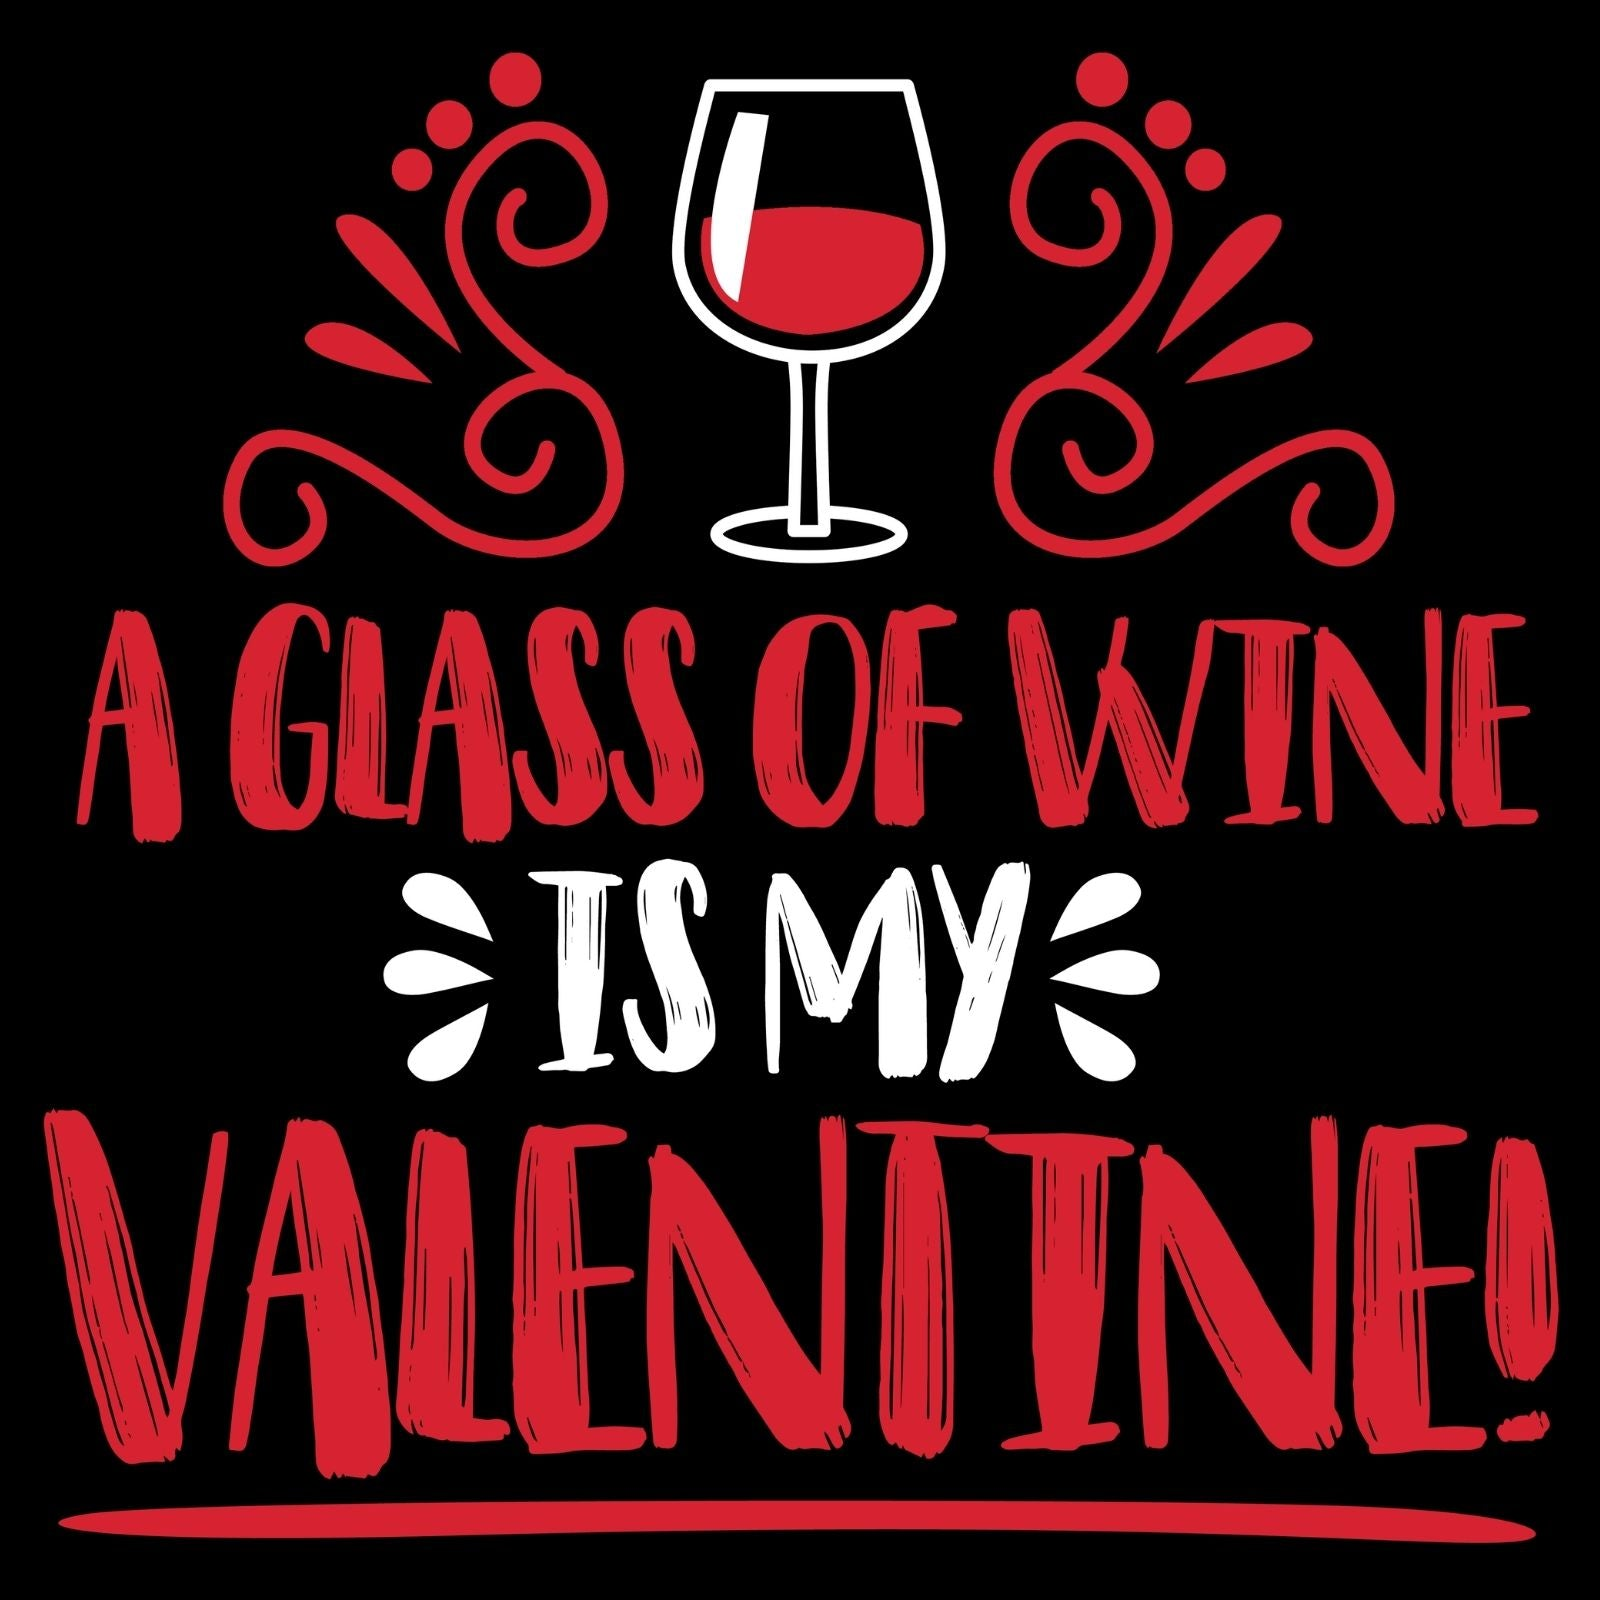 A Glass Of Wine Is My Valentine! - Bastard Graphics